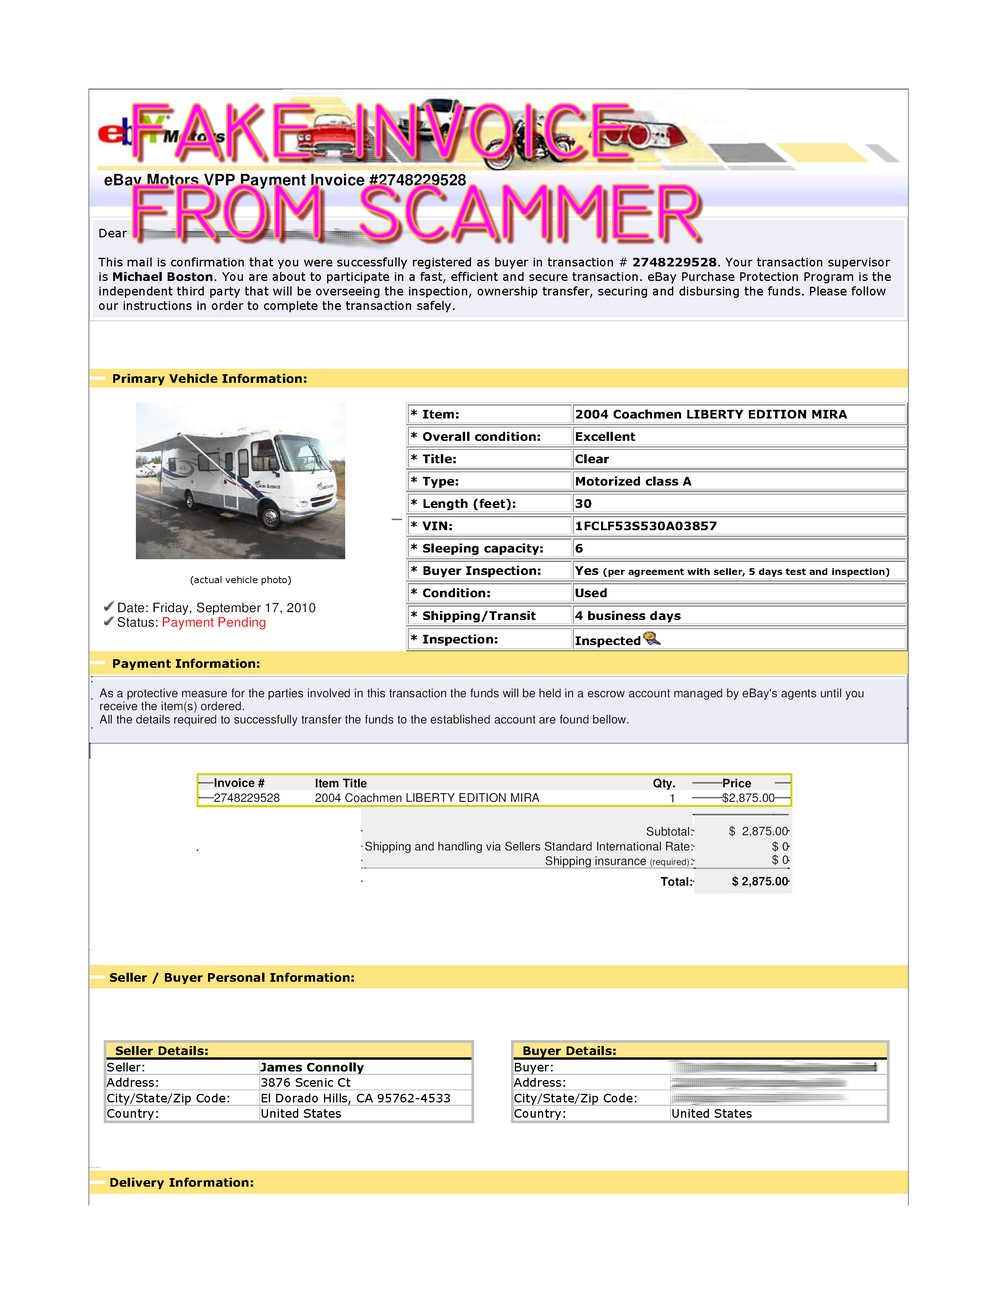 Scam Fake Ebay Transaction For Coachmen LIBERTY EDITION MIRA - How to make an invoice on ebay